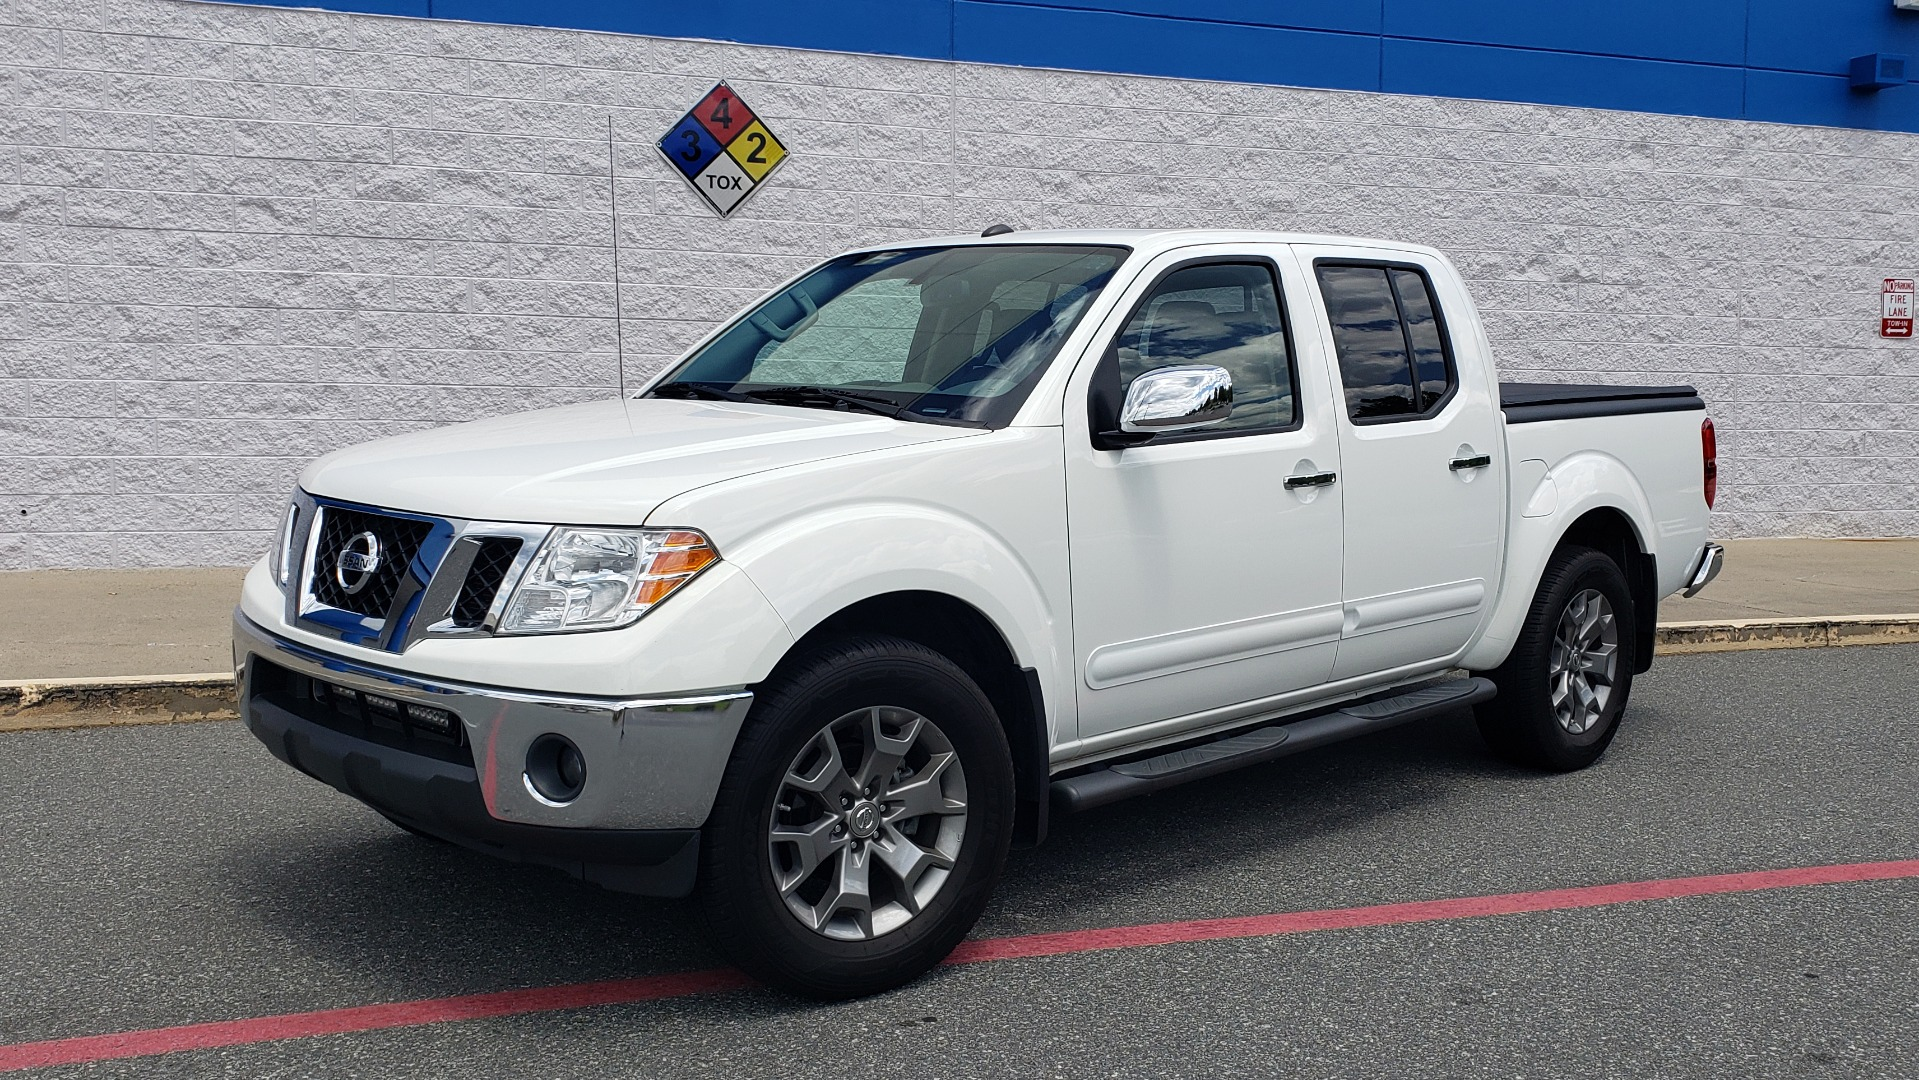 Used 2019 Nissan FRONTIER SL CREW CAB / 4X4 / NAV / SUNROOF / ROCKFORD FOSGATE / LOADED for sale $31,495 at Formula Imports in Charlotte NC 28227 1